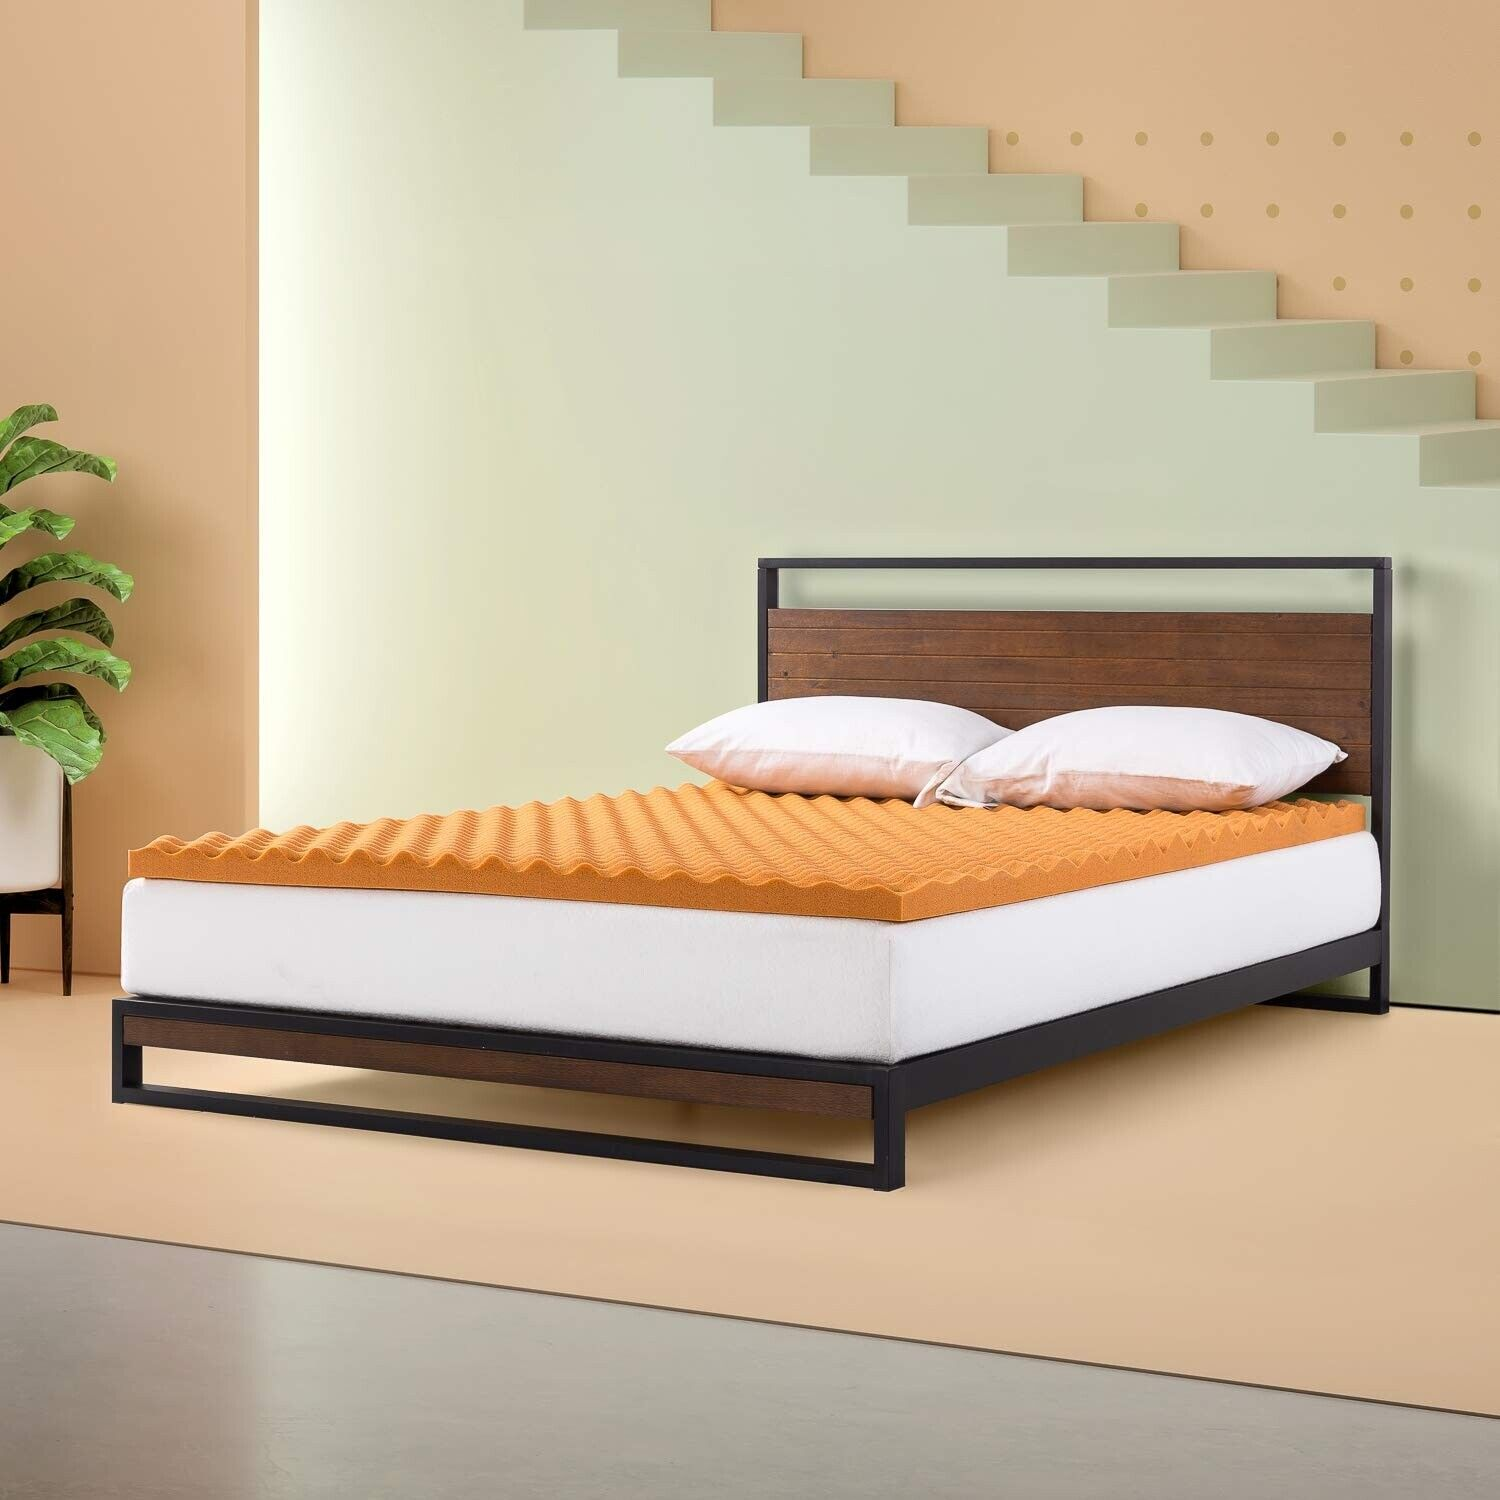 Zinus - 2 Inch Cooling Convoluted Copper Memory Foam Mattres